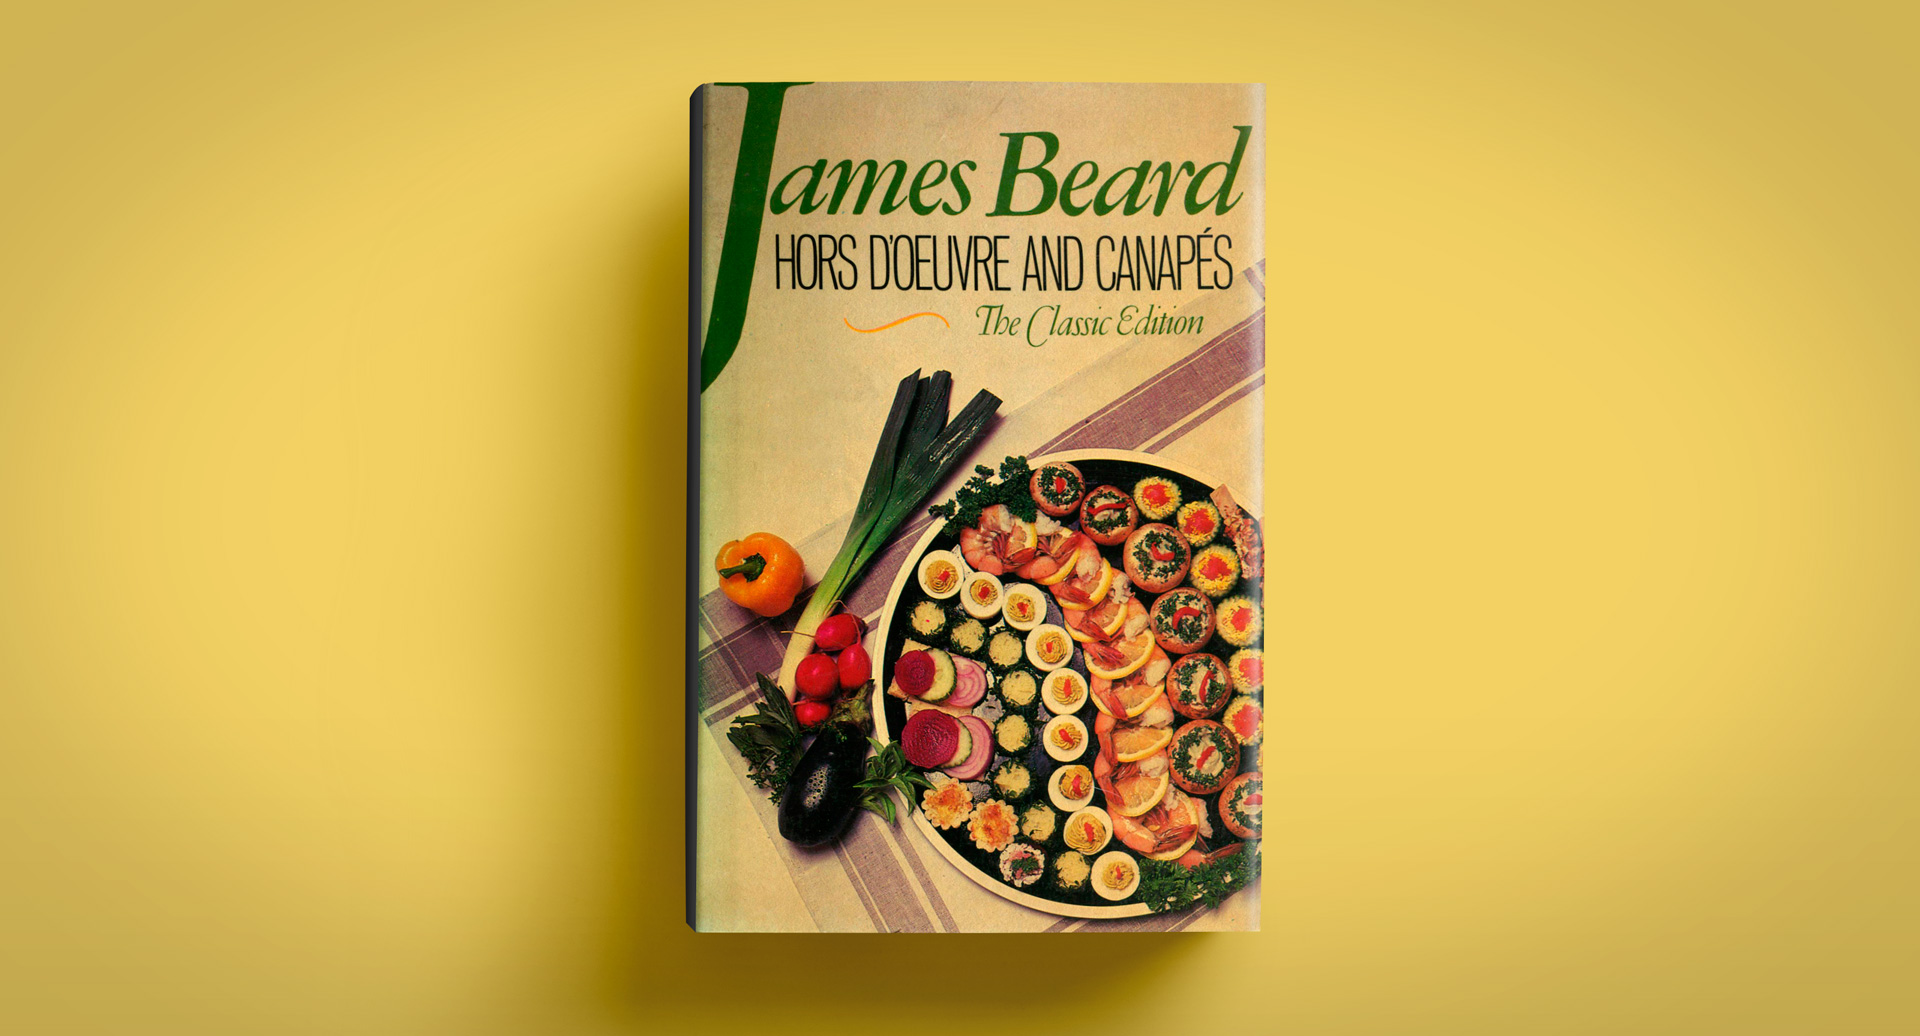 WELCOME TO THE 40s: The original cover of Hors d'Oeuvre & Canapés, Beard's 1940 book on cocktail food.